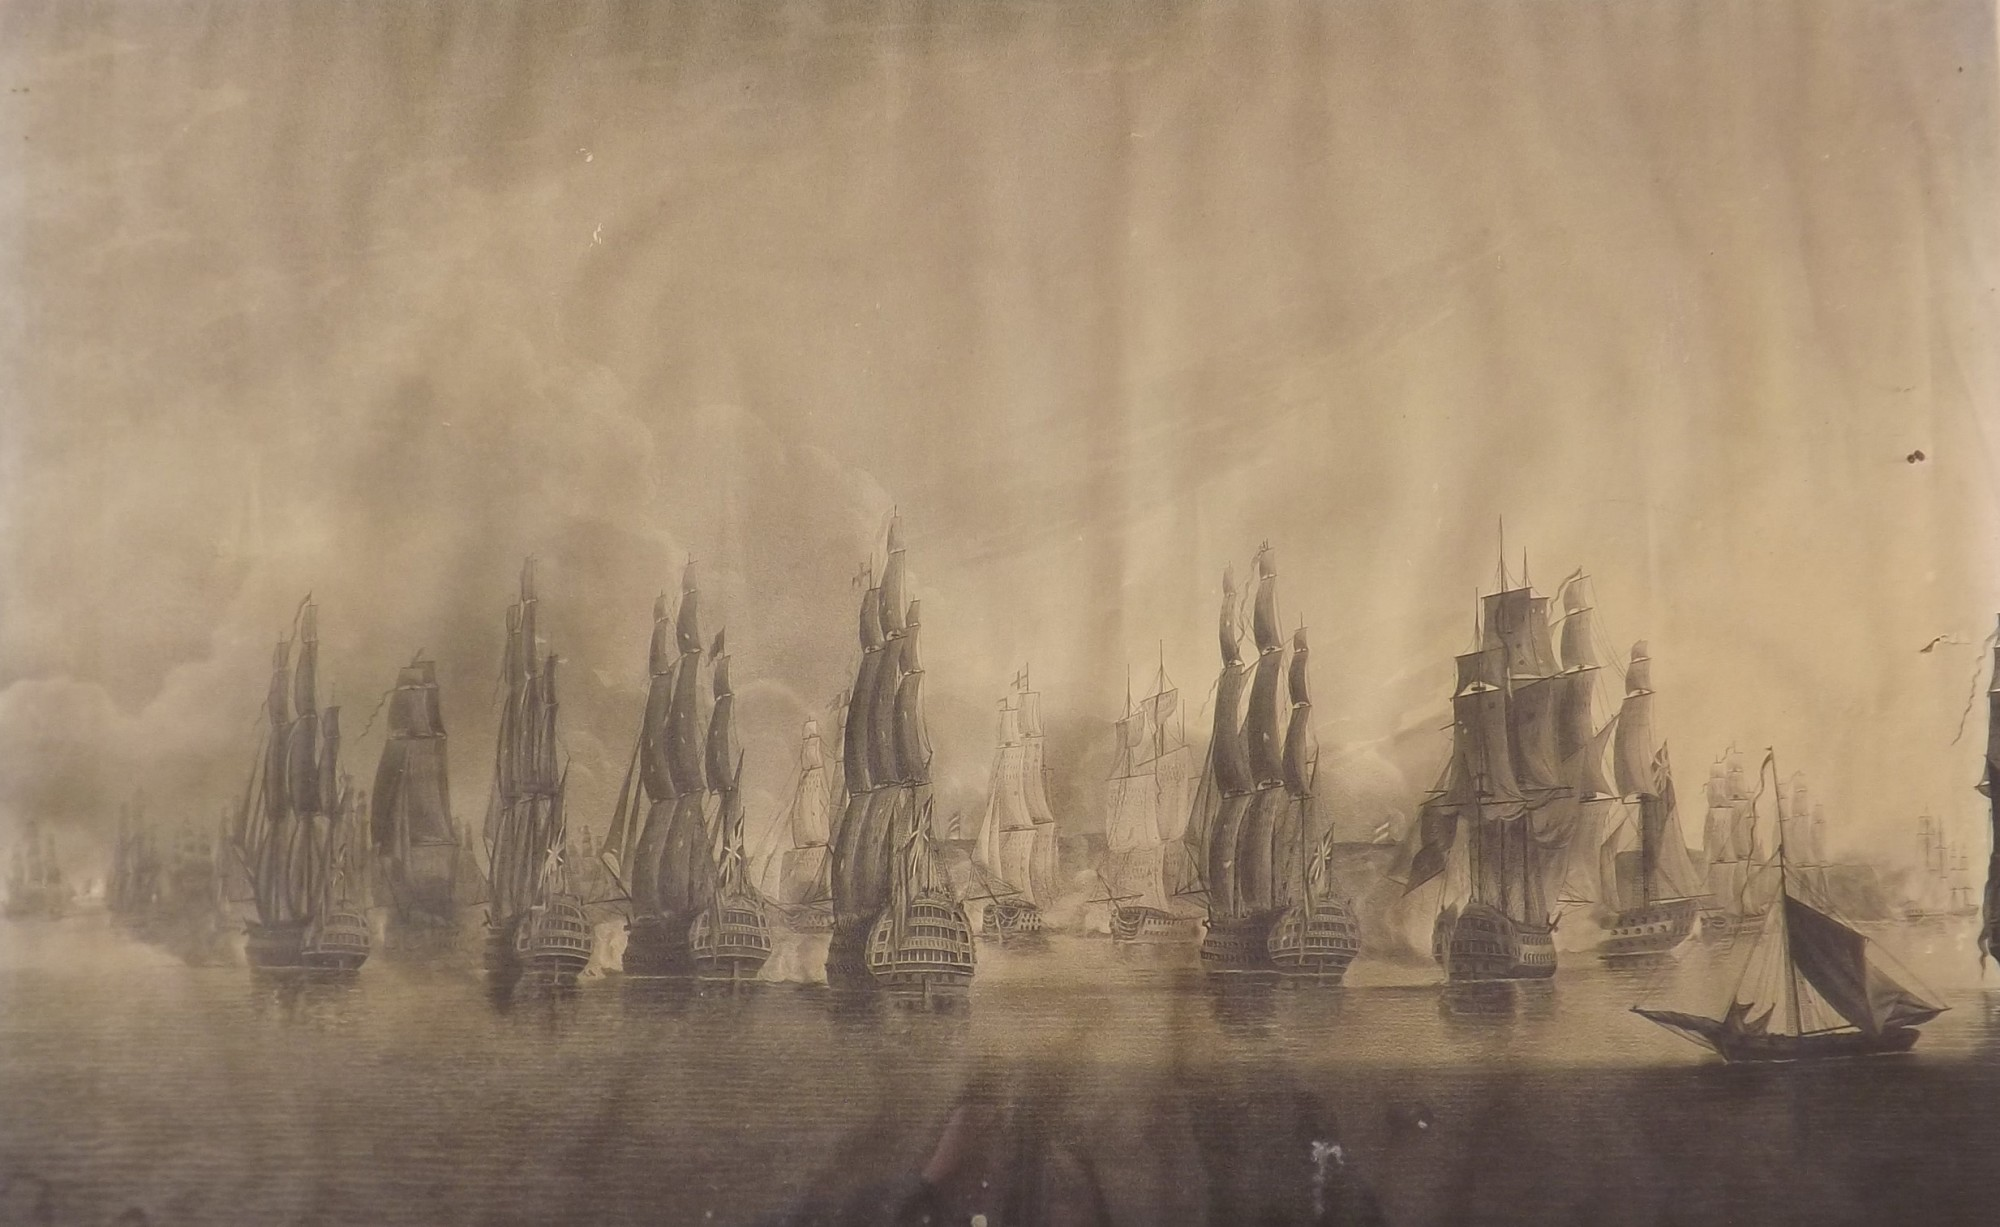 """Lotto 921 - F Dukes after Major Adlam - `View of the British Fleet`, black and white engraving, 17"""" x 27"""","""